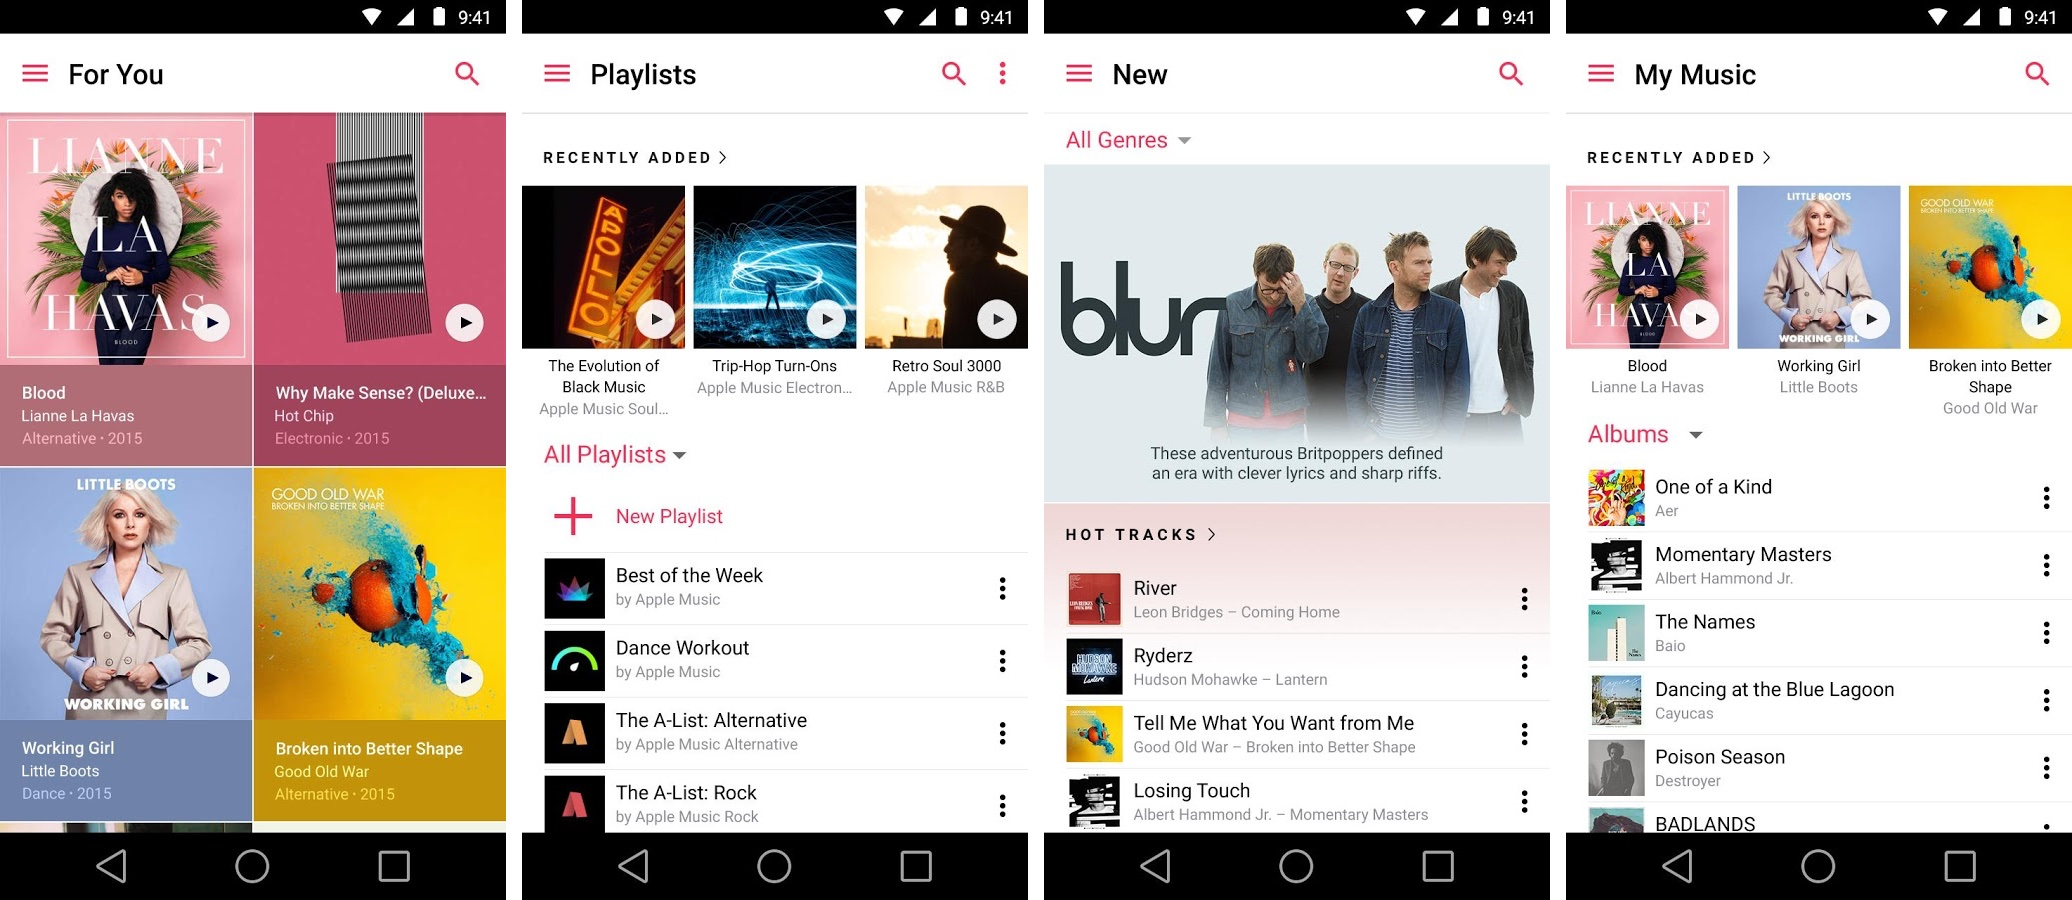 Captura de pantalla 001 de Apple Music 1.0 para Android